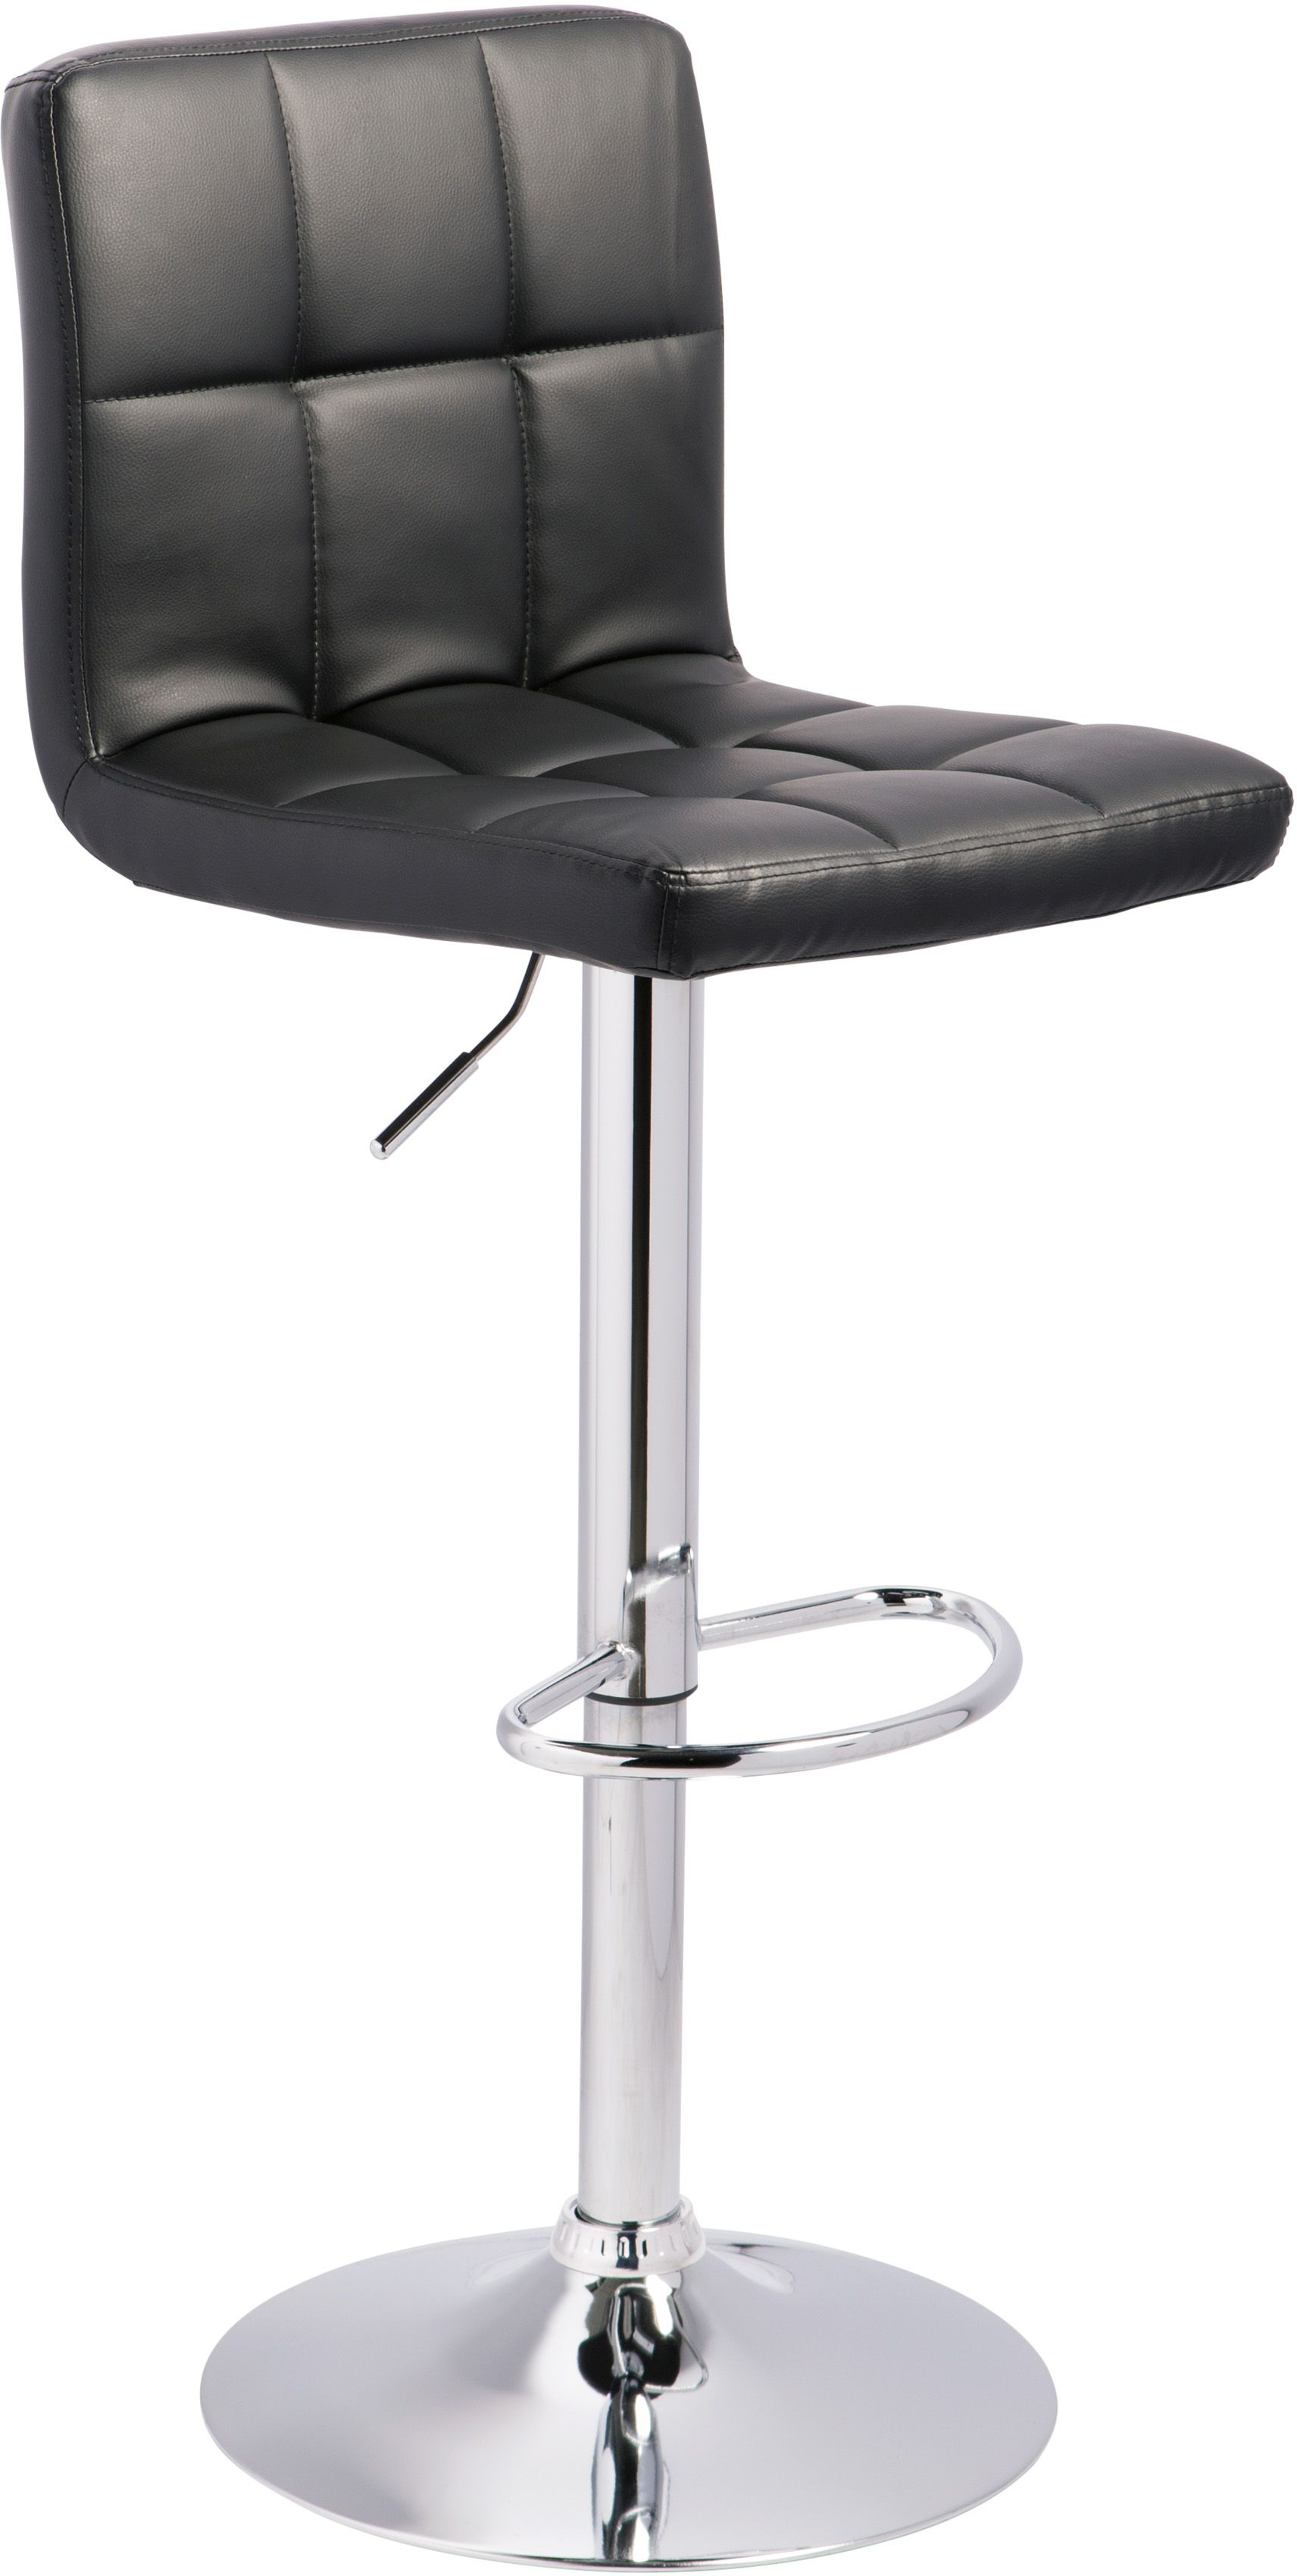 Groovy Stools Coles Appliance Home Furnishings Alphanode Cool Chair Designs And Ideas Alphanodeonline